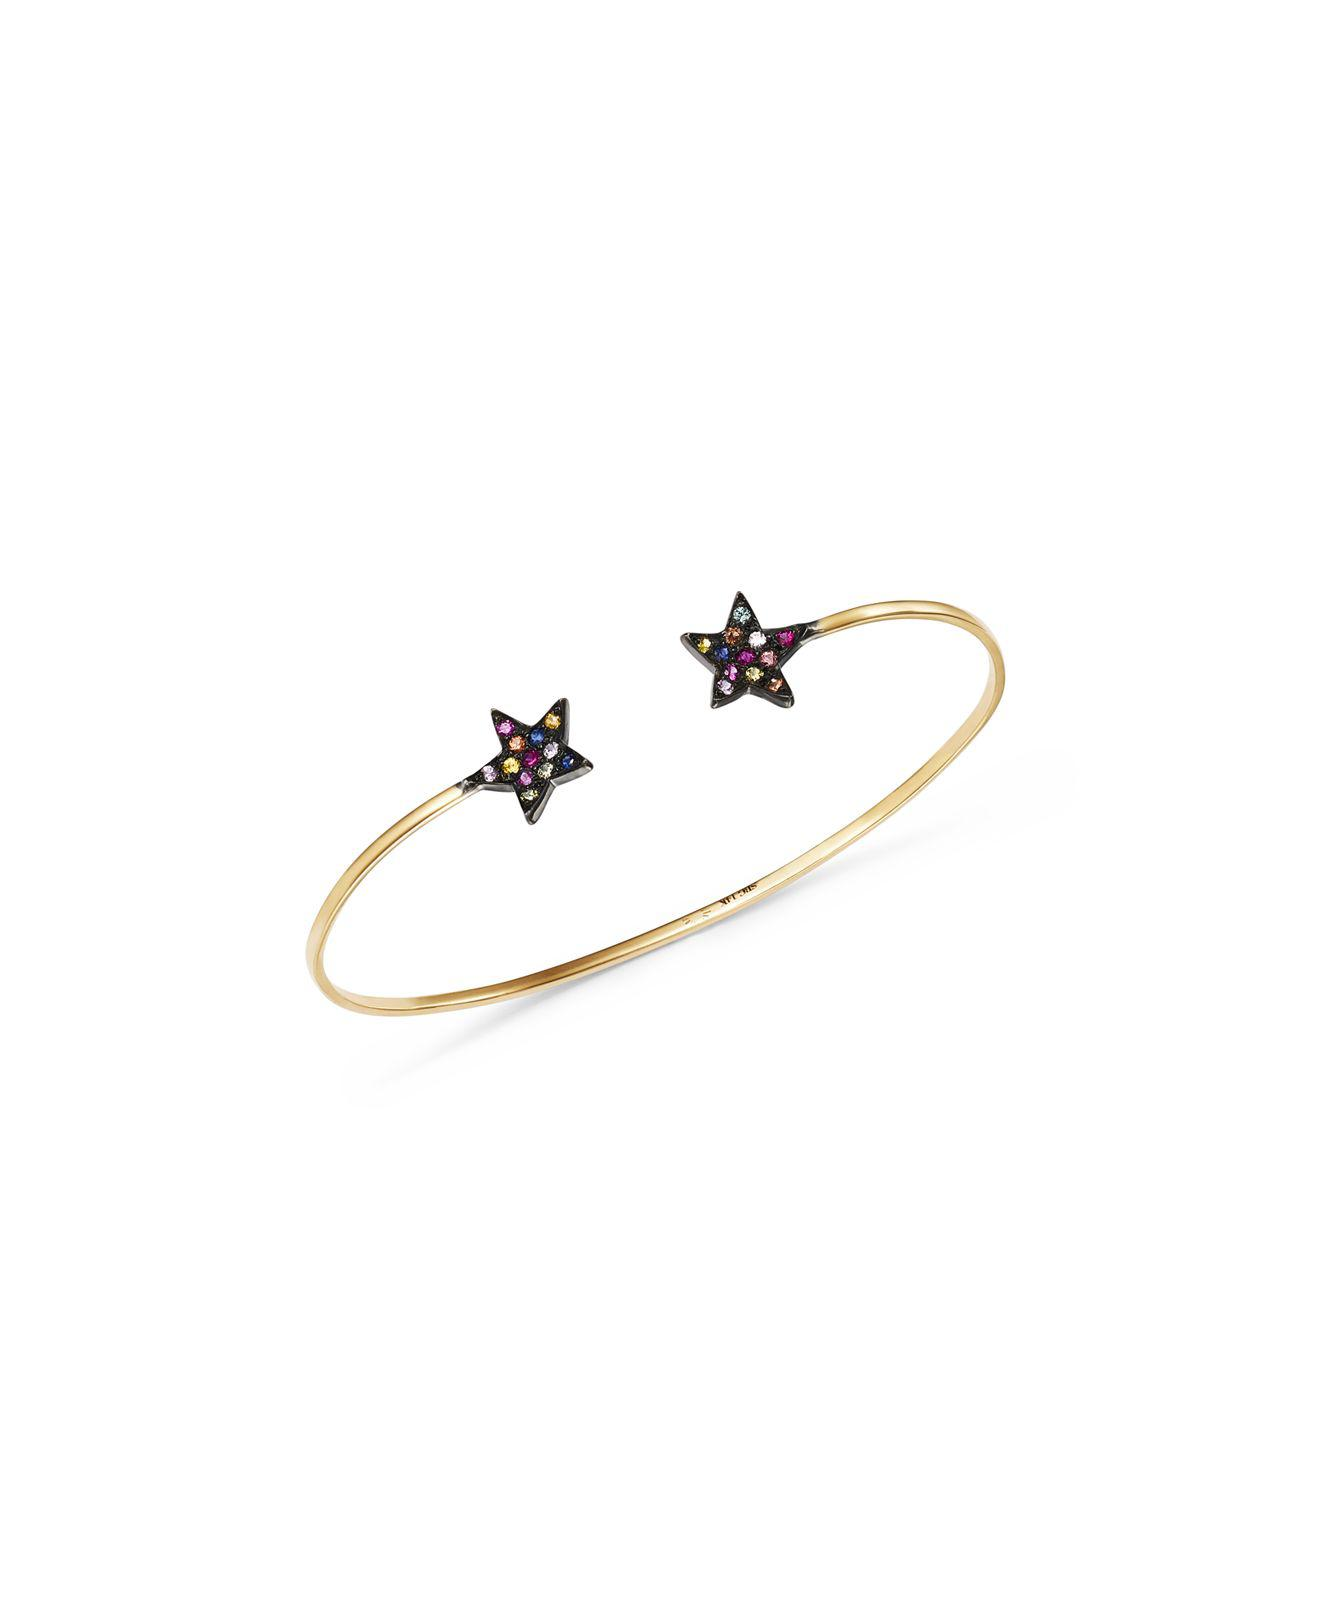 14K Yellow Gold and Sapphire Figure 8 Cuff She Bee Big Discount Sale Online 6y2Rvi